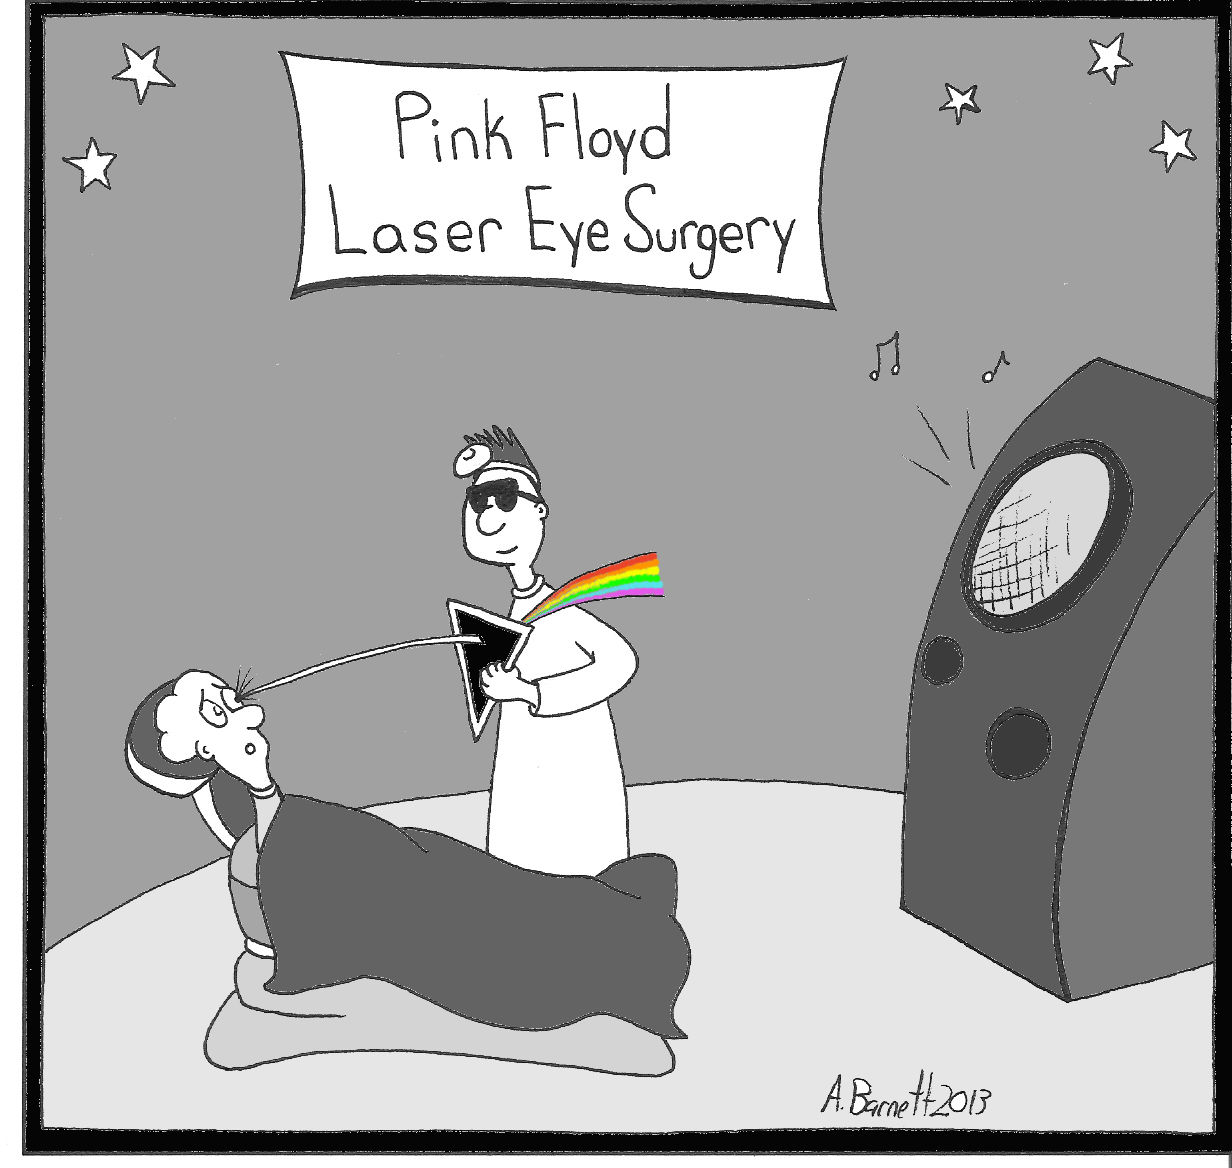 Surgical cartoons surgical cartoon funny surgical picture surgical -  Laser By Allegra Barnett Allegra Barnett